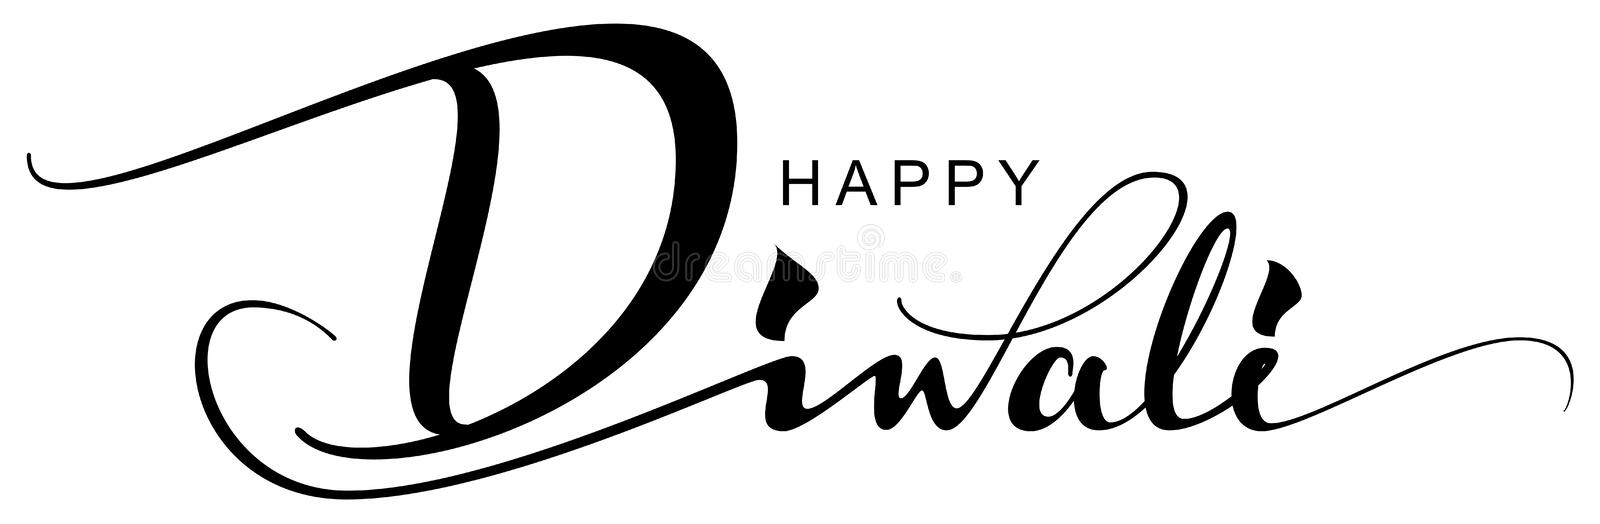 Happy Diwali text greeting card indian holiday festival of lights vector illustration